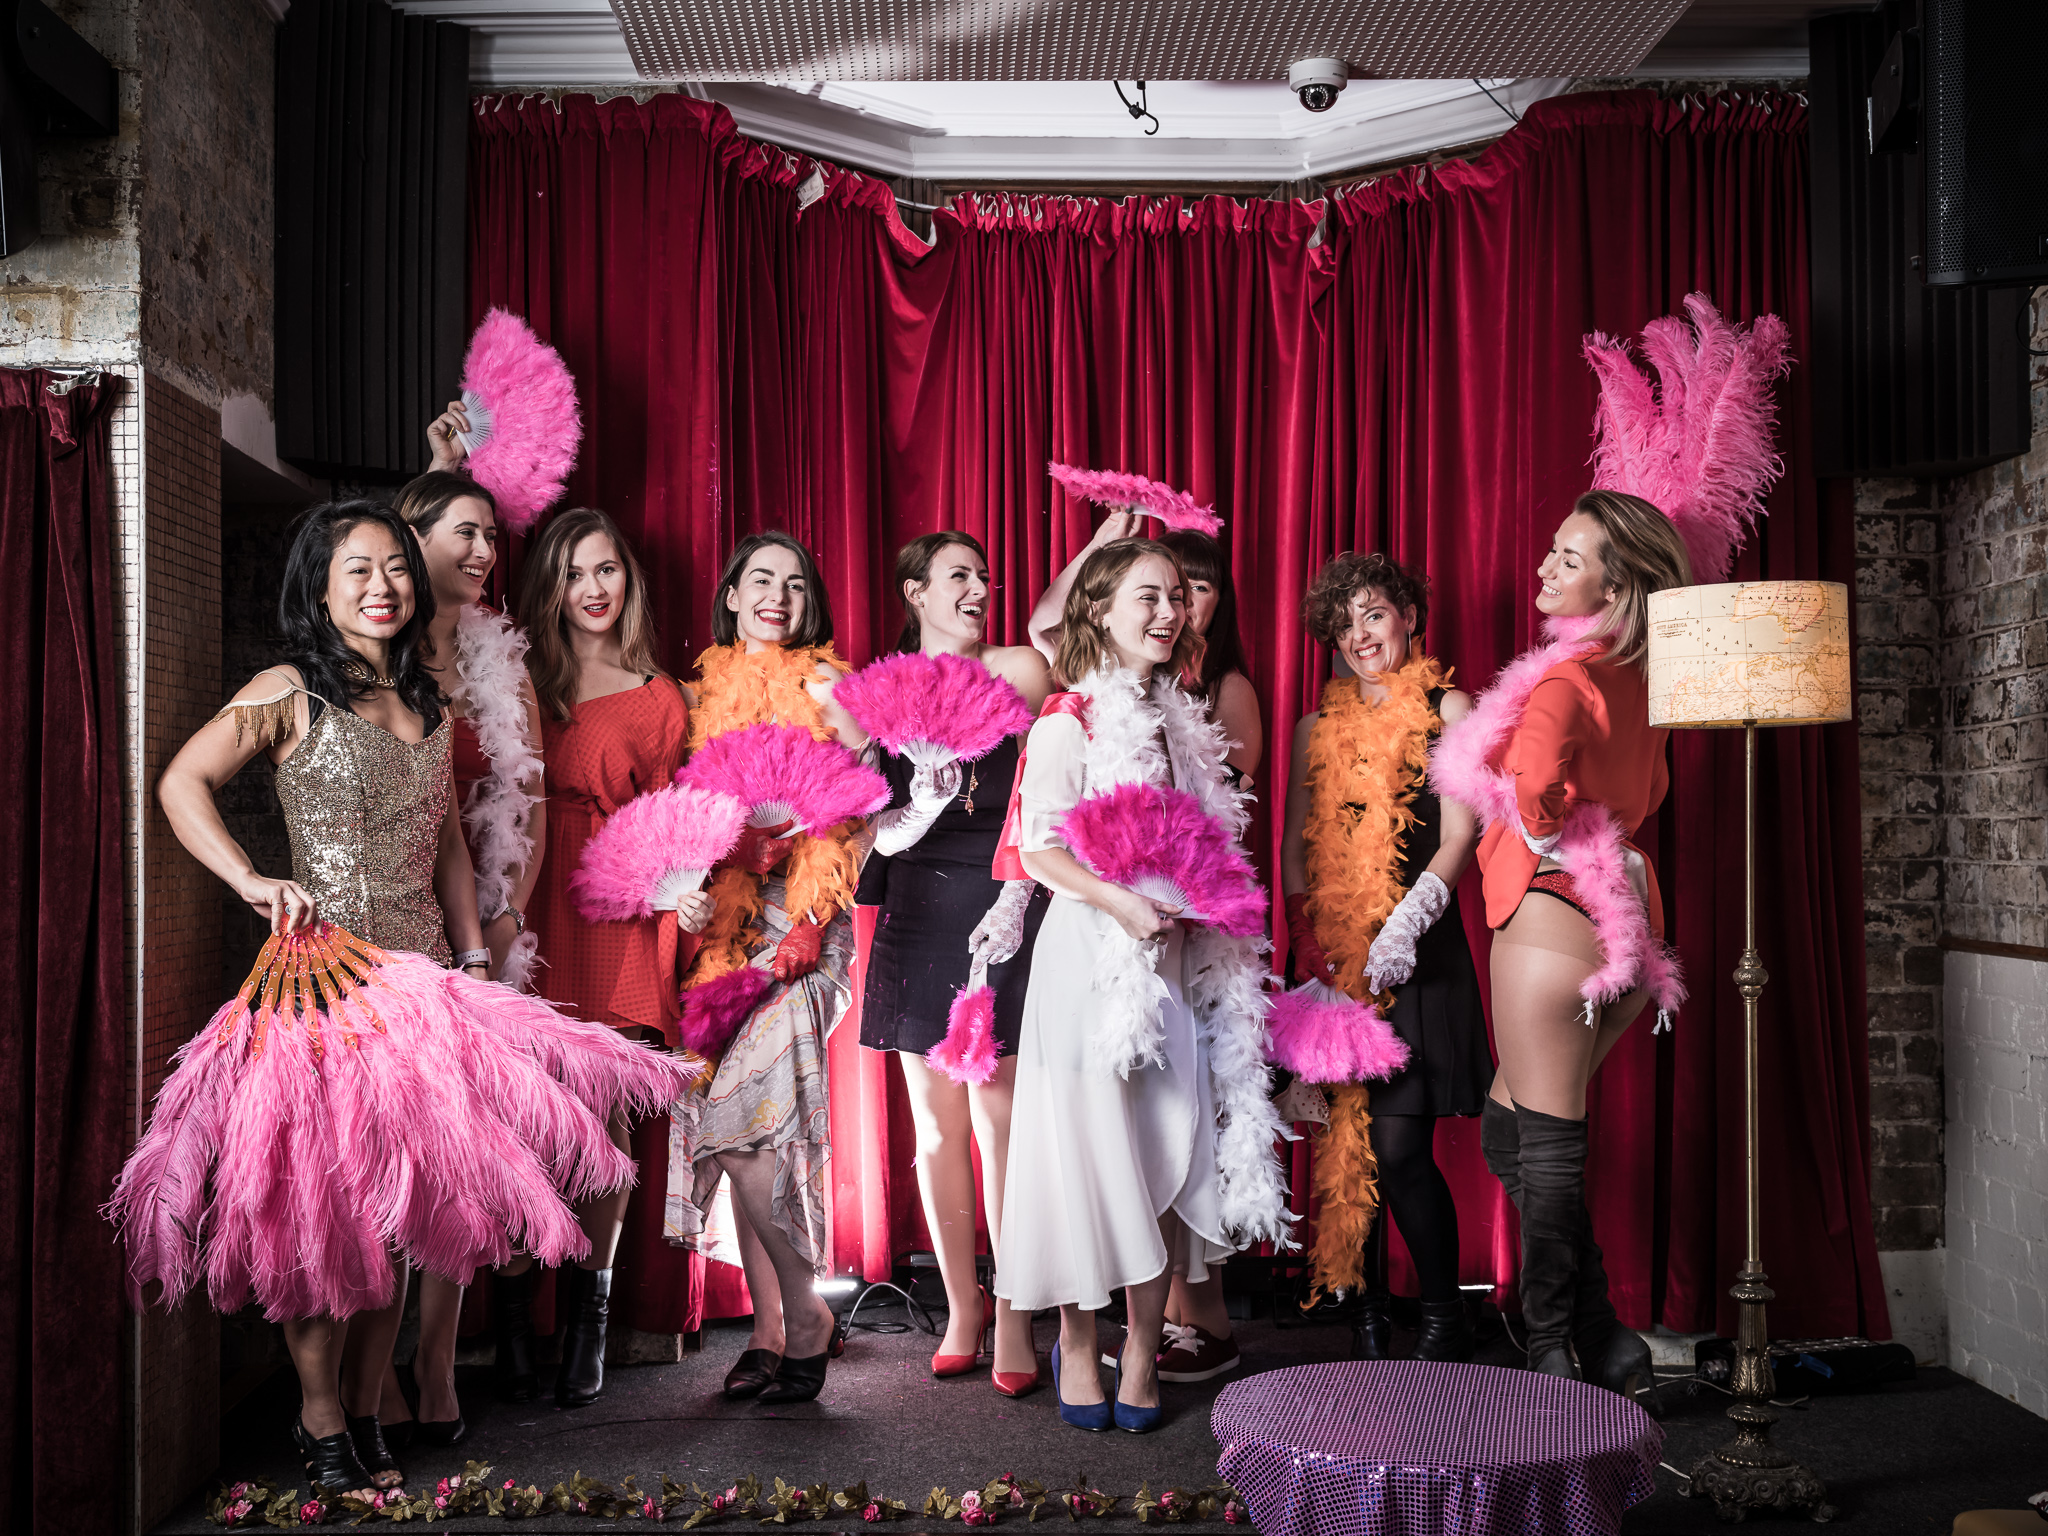 Bells & Tassles - A burlesque party with all of the bells and whistles!